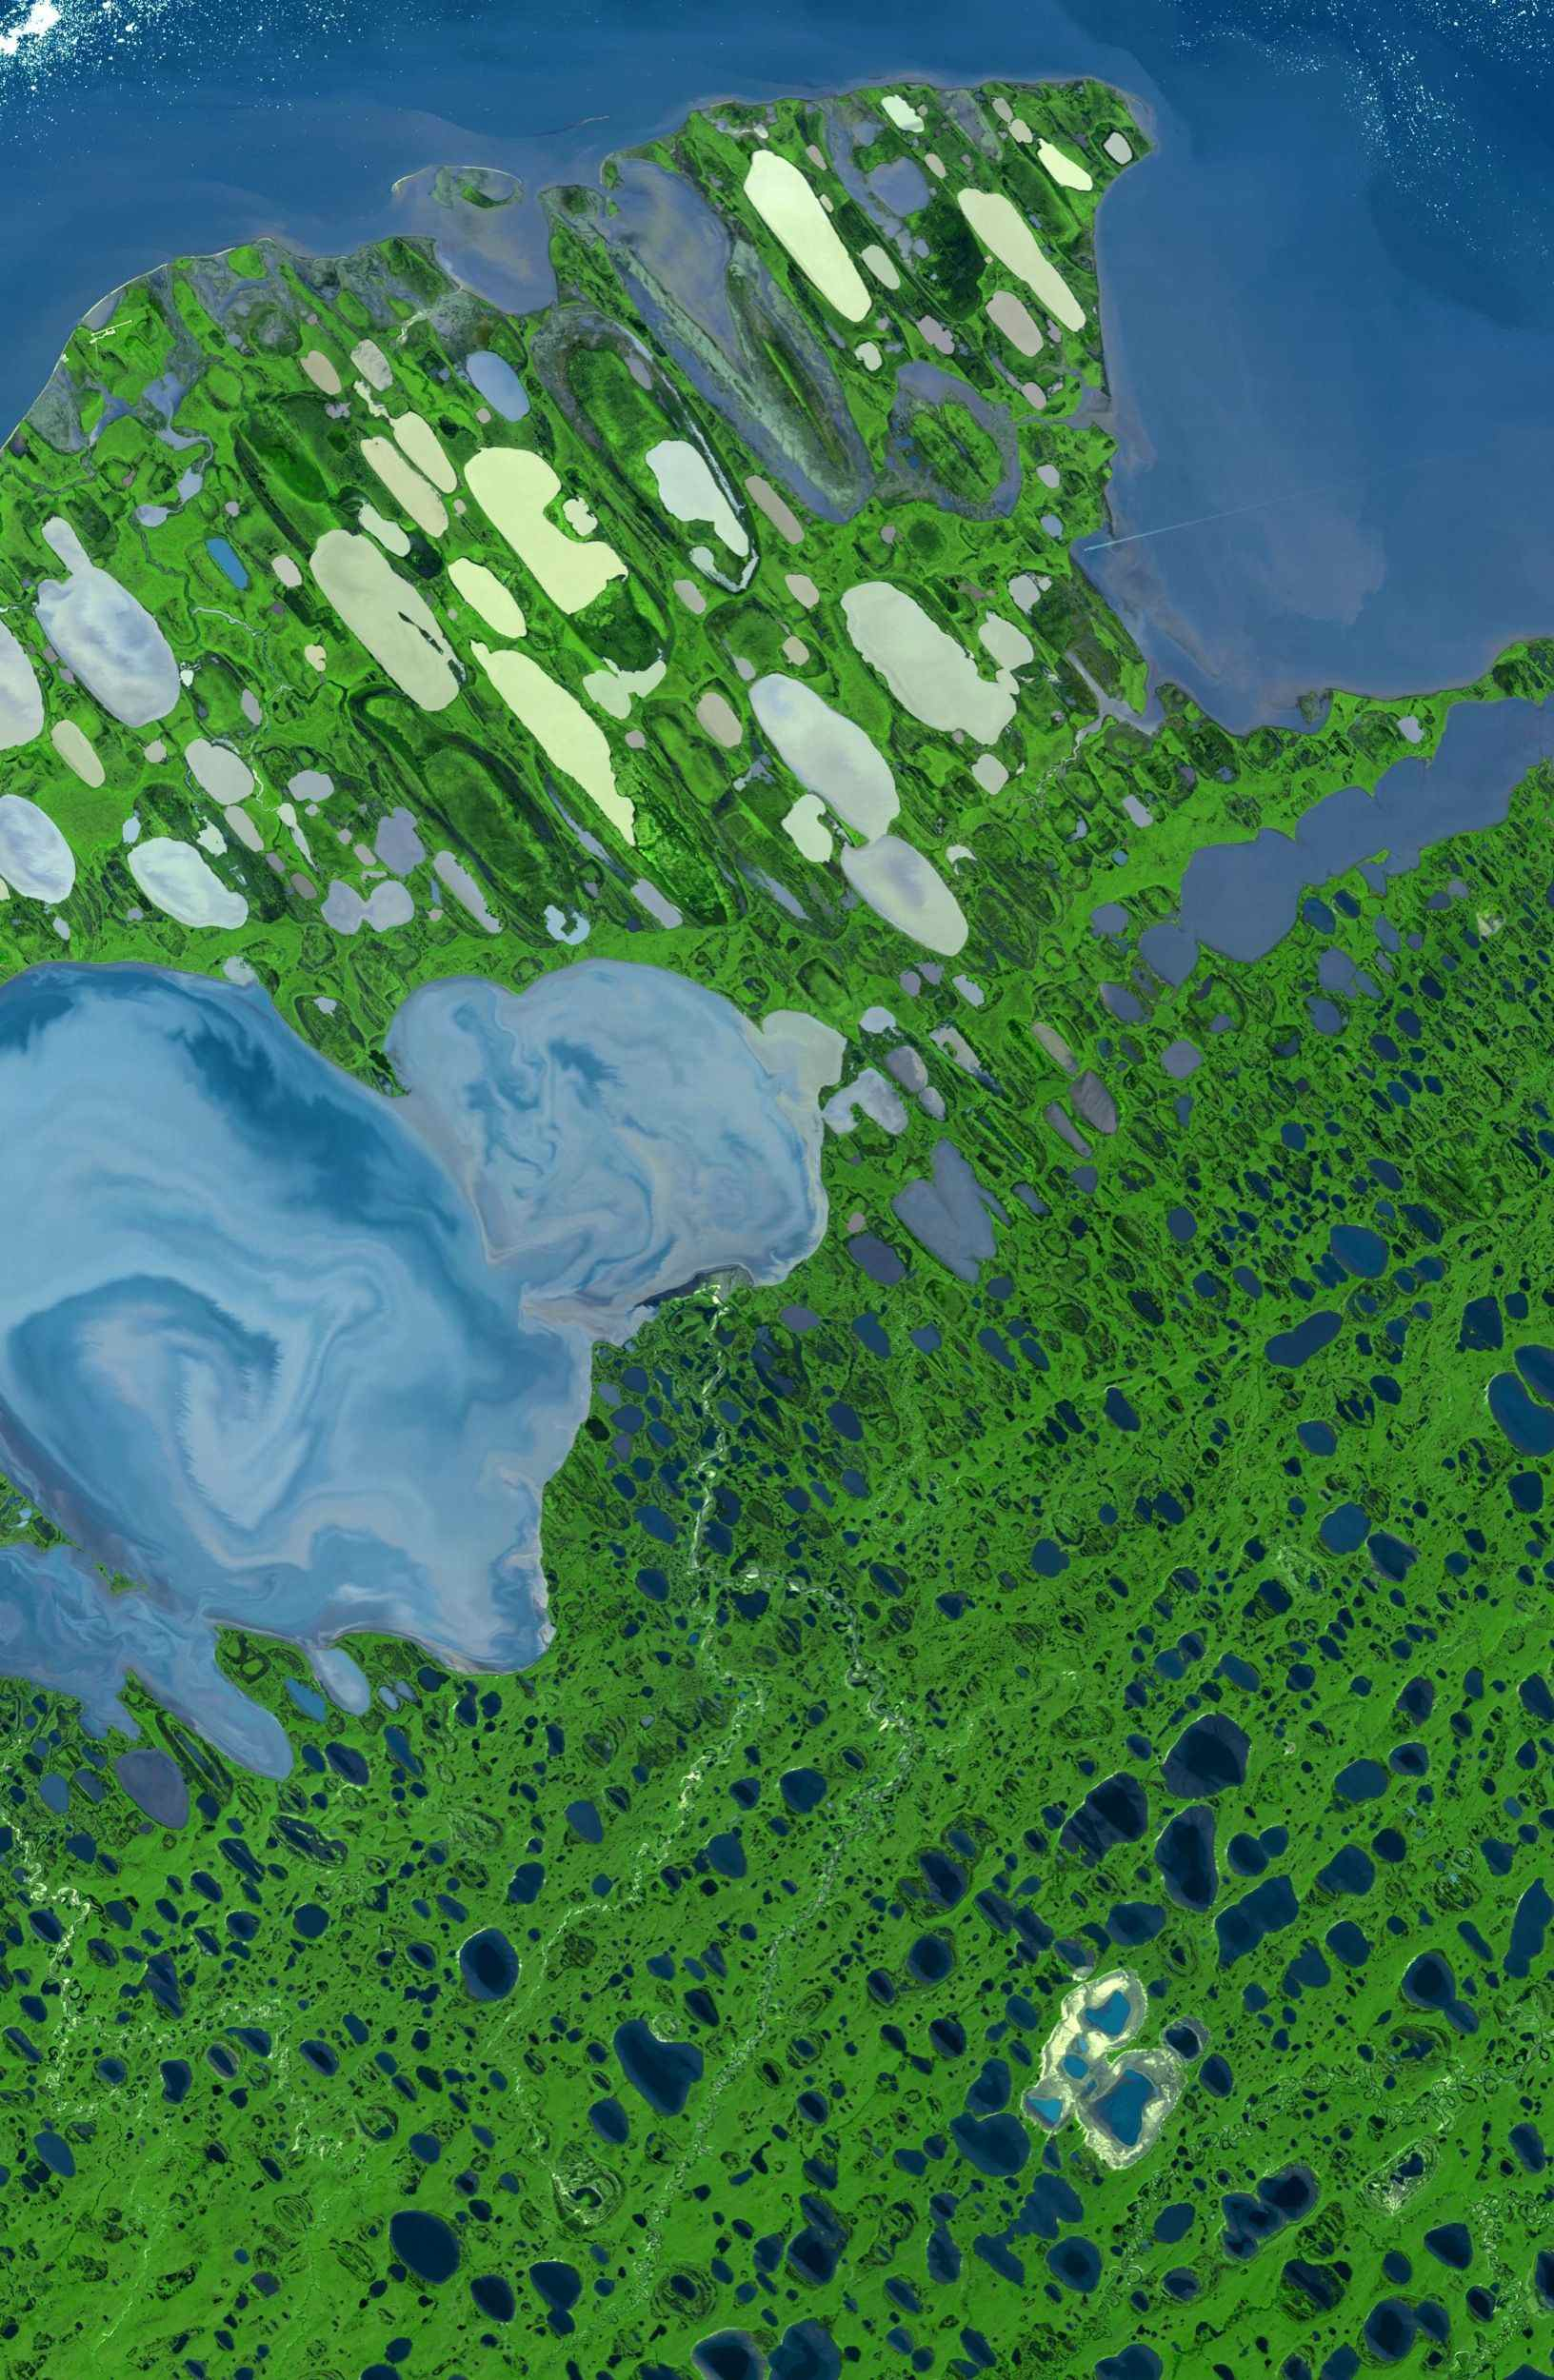 This image of Teshekpuk Lake on Alaska's North Slope, within the National Petroleum Reserve, was acquired on August 15, 2000 by NASA's Terra spacecraft.